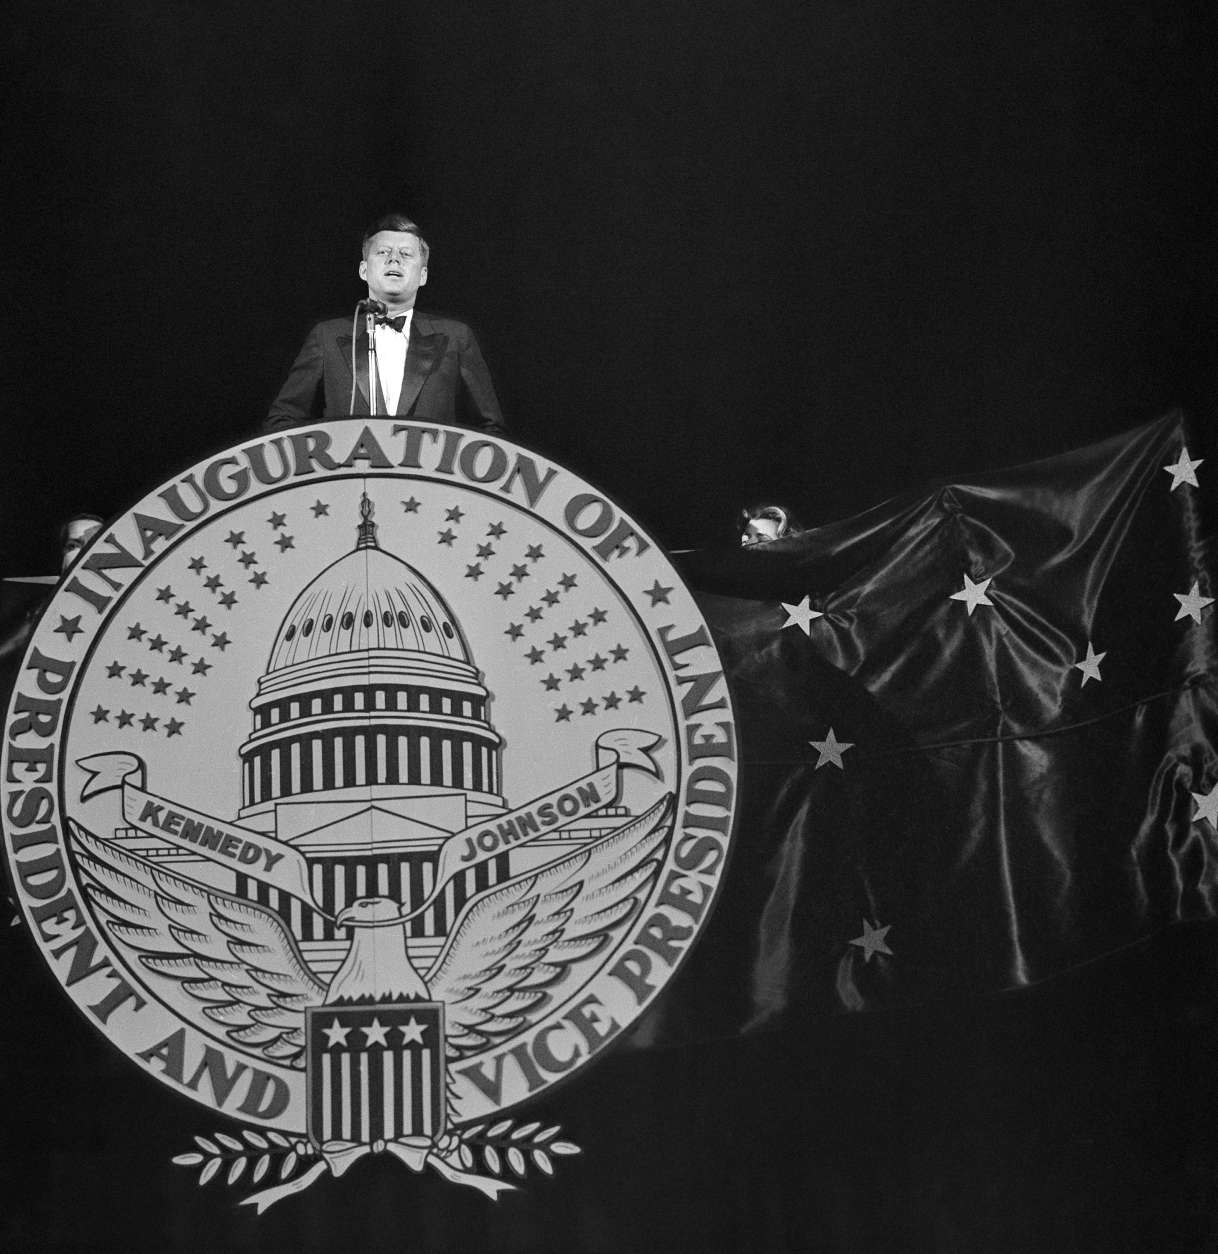 President-elect John F. Kennedy addresses the audience attending the Inaugural Gala performance on the eve of his inauguration in Washington, Jan. 19, 1961. The big show, with top stars of the entertainment world, was sponsored by the Democratic National Committee as a fund-raising event. A snowstorm which swept the city and paralyzed traffic, cut down on the anticipated attendance. (AP Photo/Hans Von Nolde)